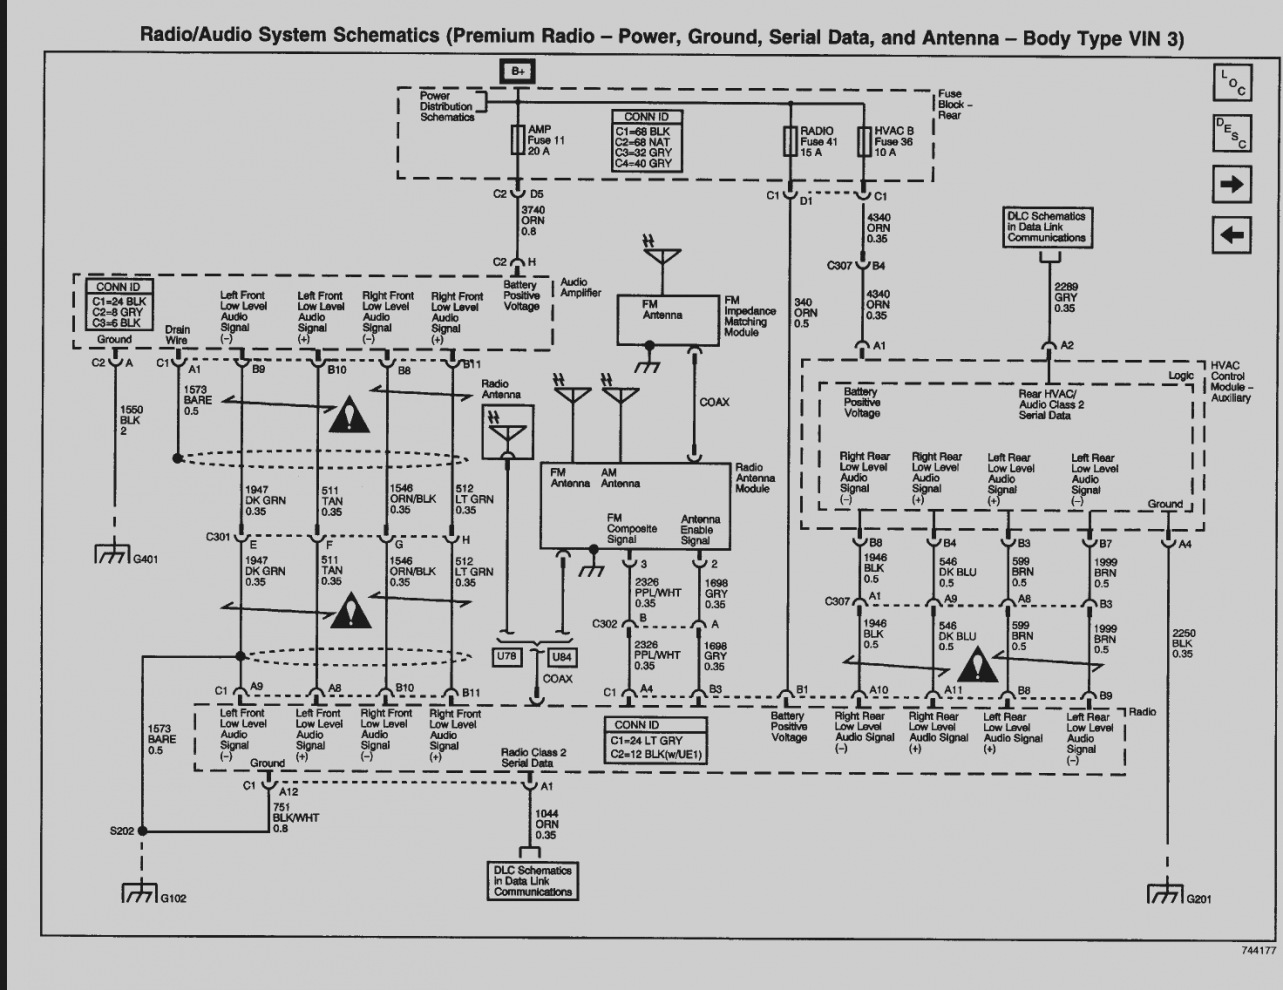 2003 gmc yukon bose radio wiring diagram | free wiring diagram stereo wiring diagram for 2001 yukon #8